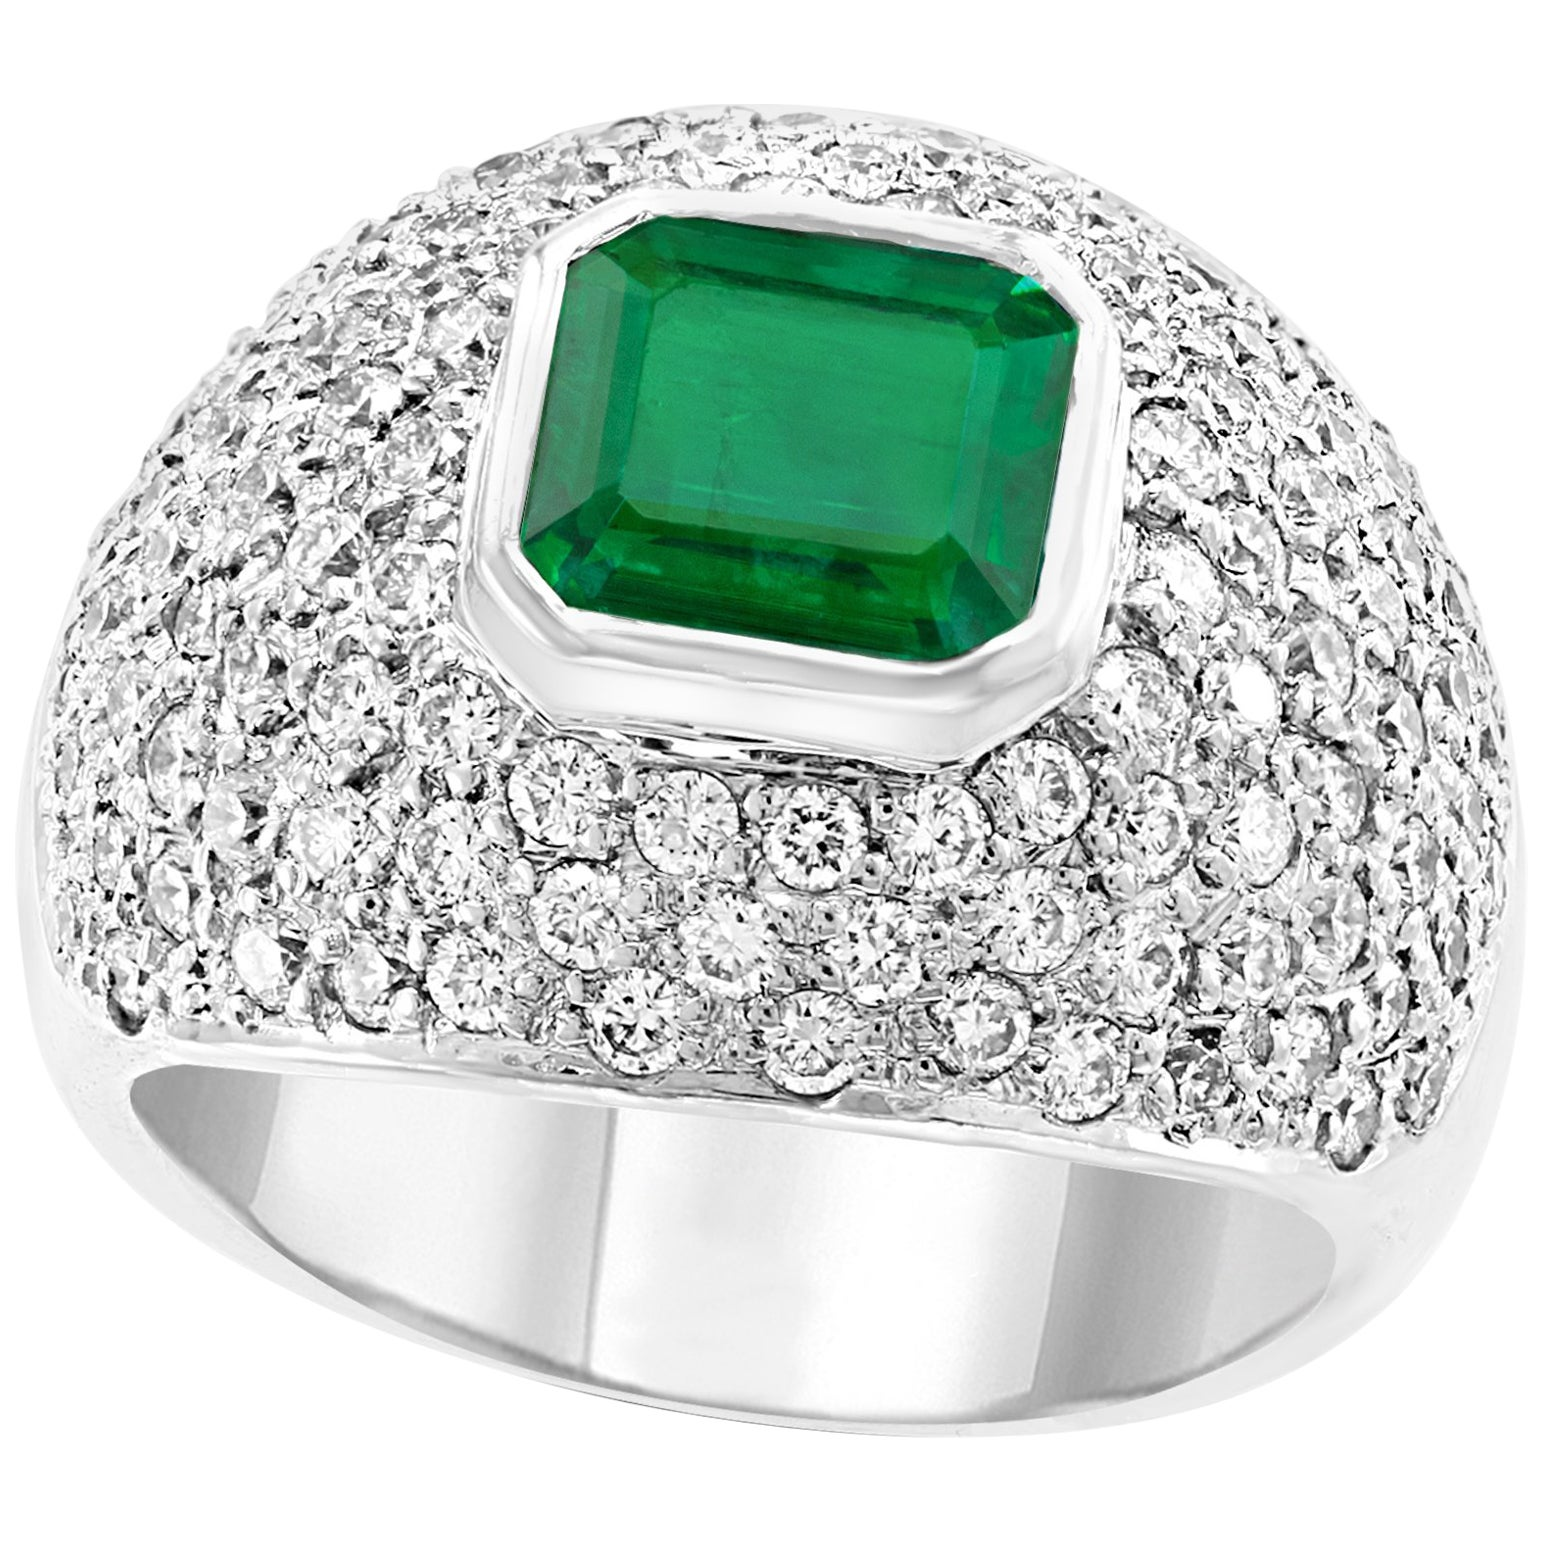 3 Carat Emerald Cut Colombian Emerald and Diamond 18 Karat Gold Ring Estate